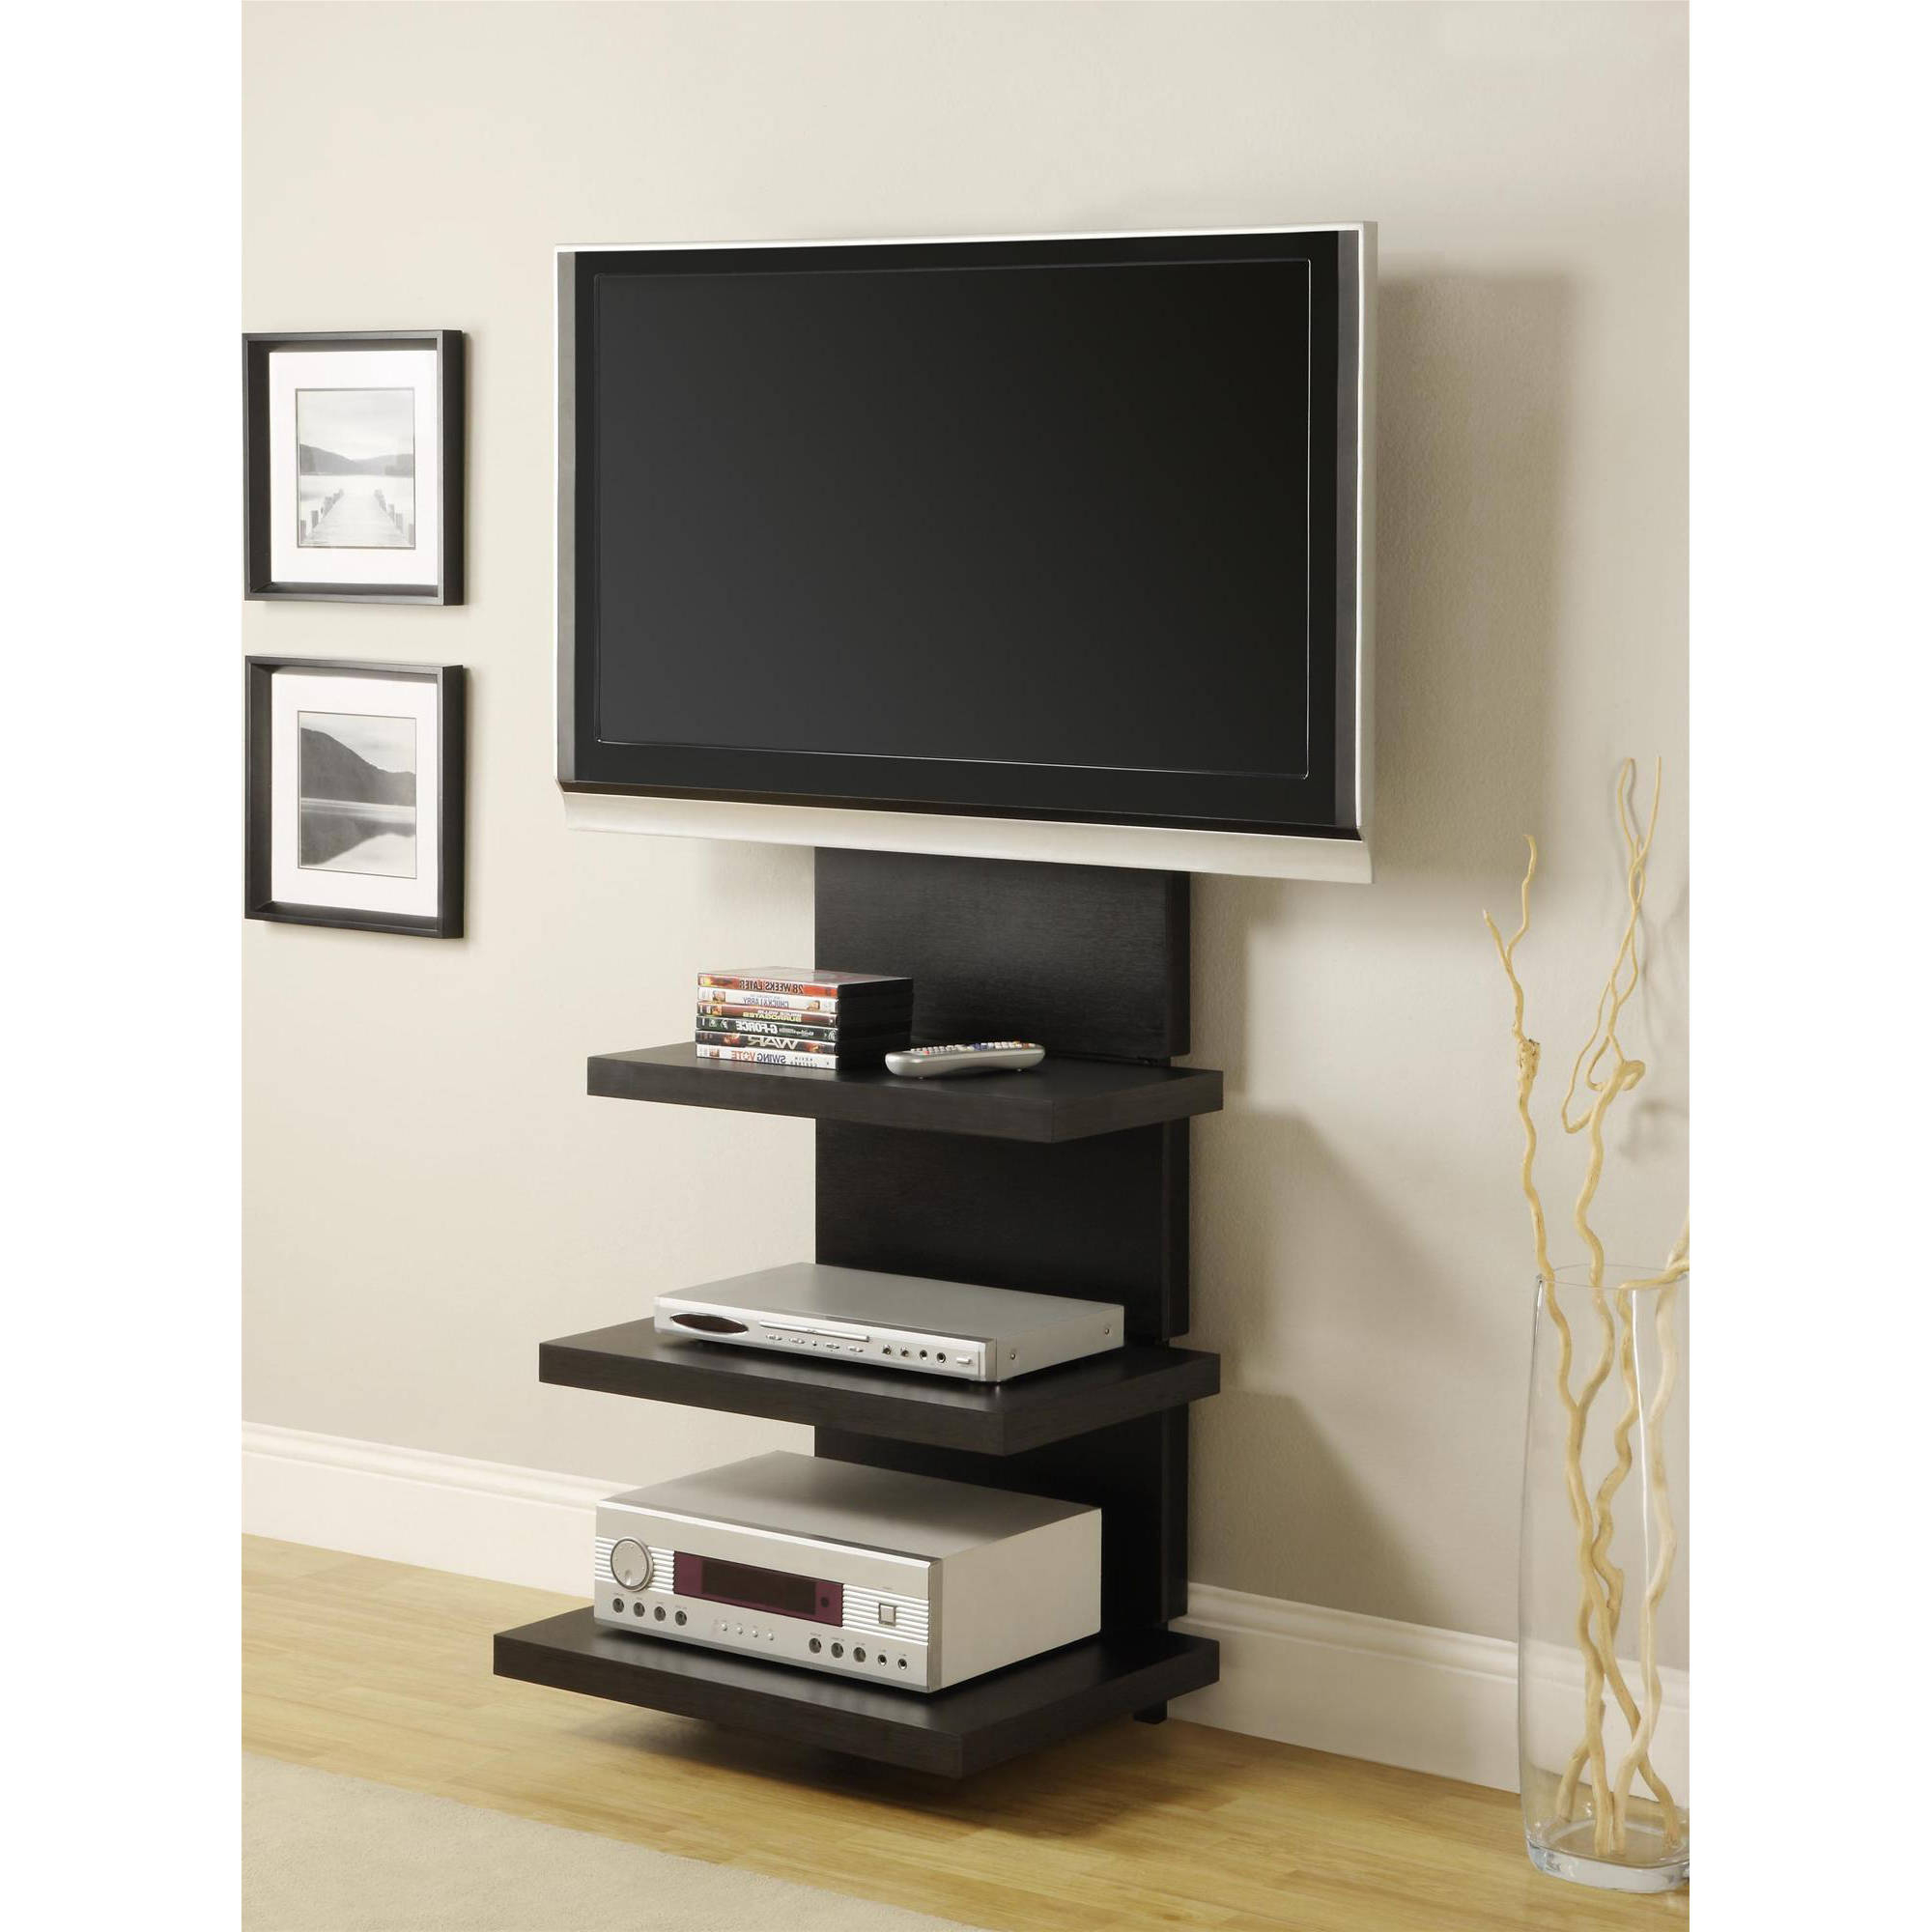 "Modern Wall Mount Tv Stands Throughout 2017 Ameriwood Home Elevation Altramount Tv Stand For Tvs Up To 60"" Wide (View 10 of 20)"